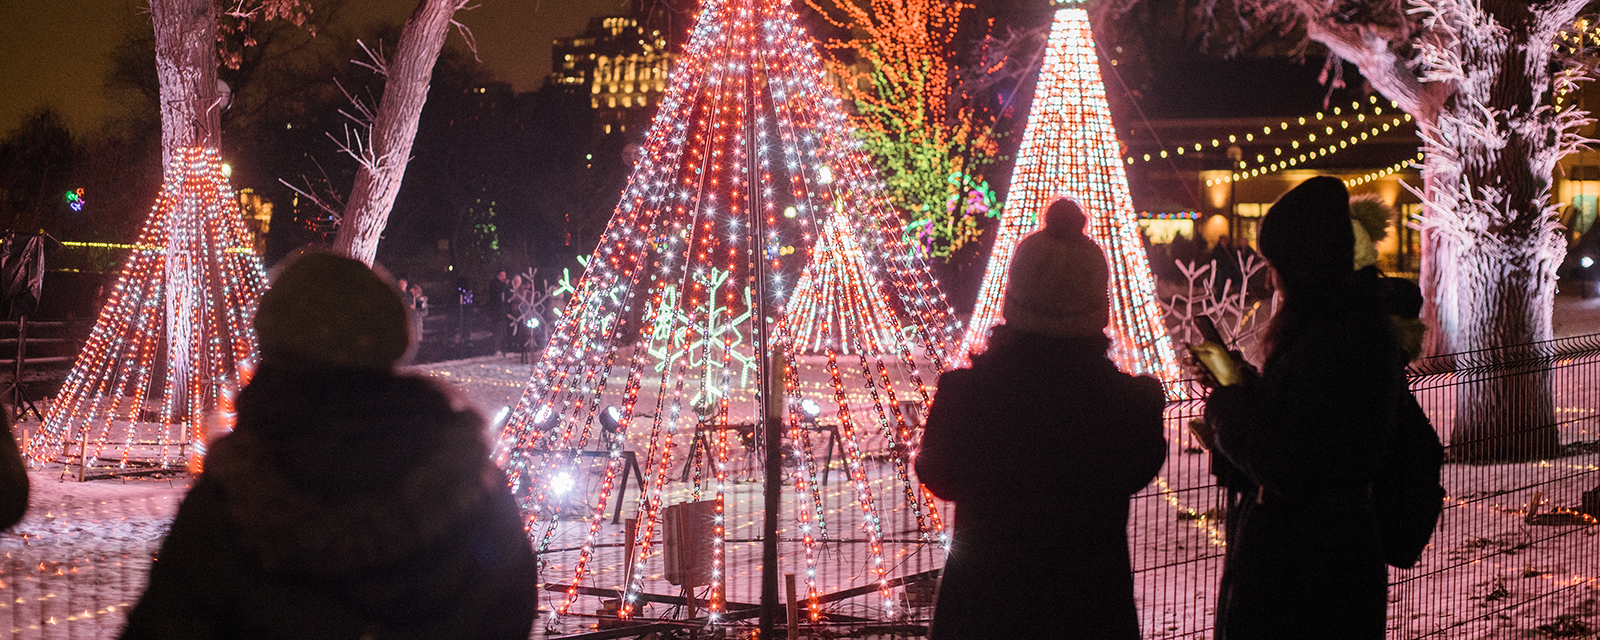 Guests enjoying light displays during ZooLights